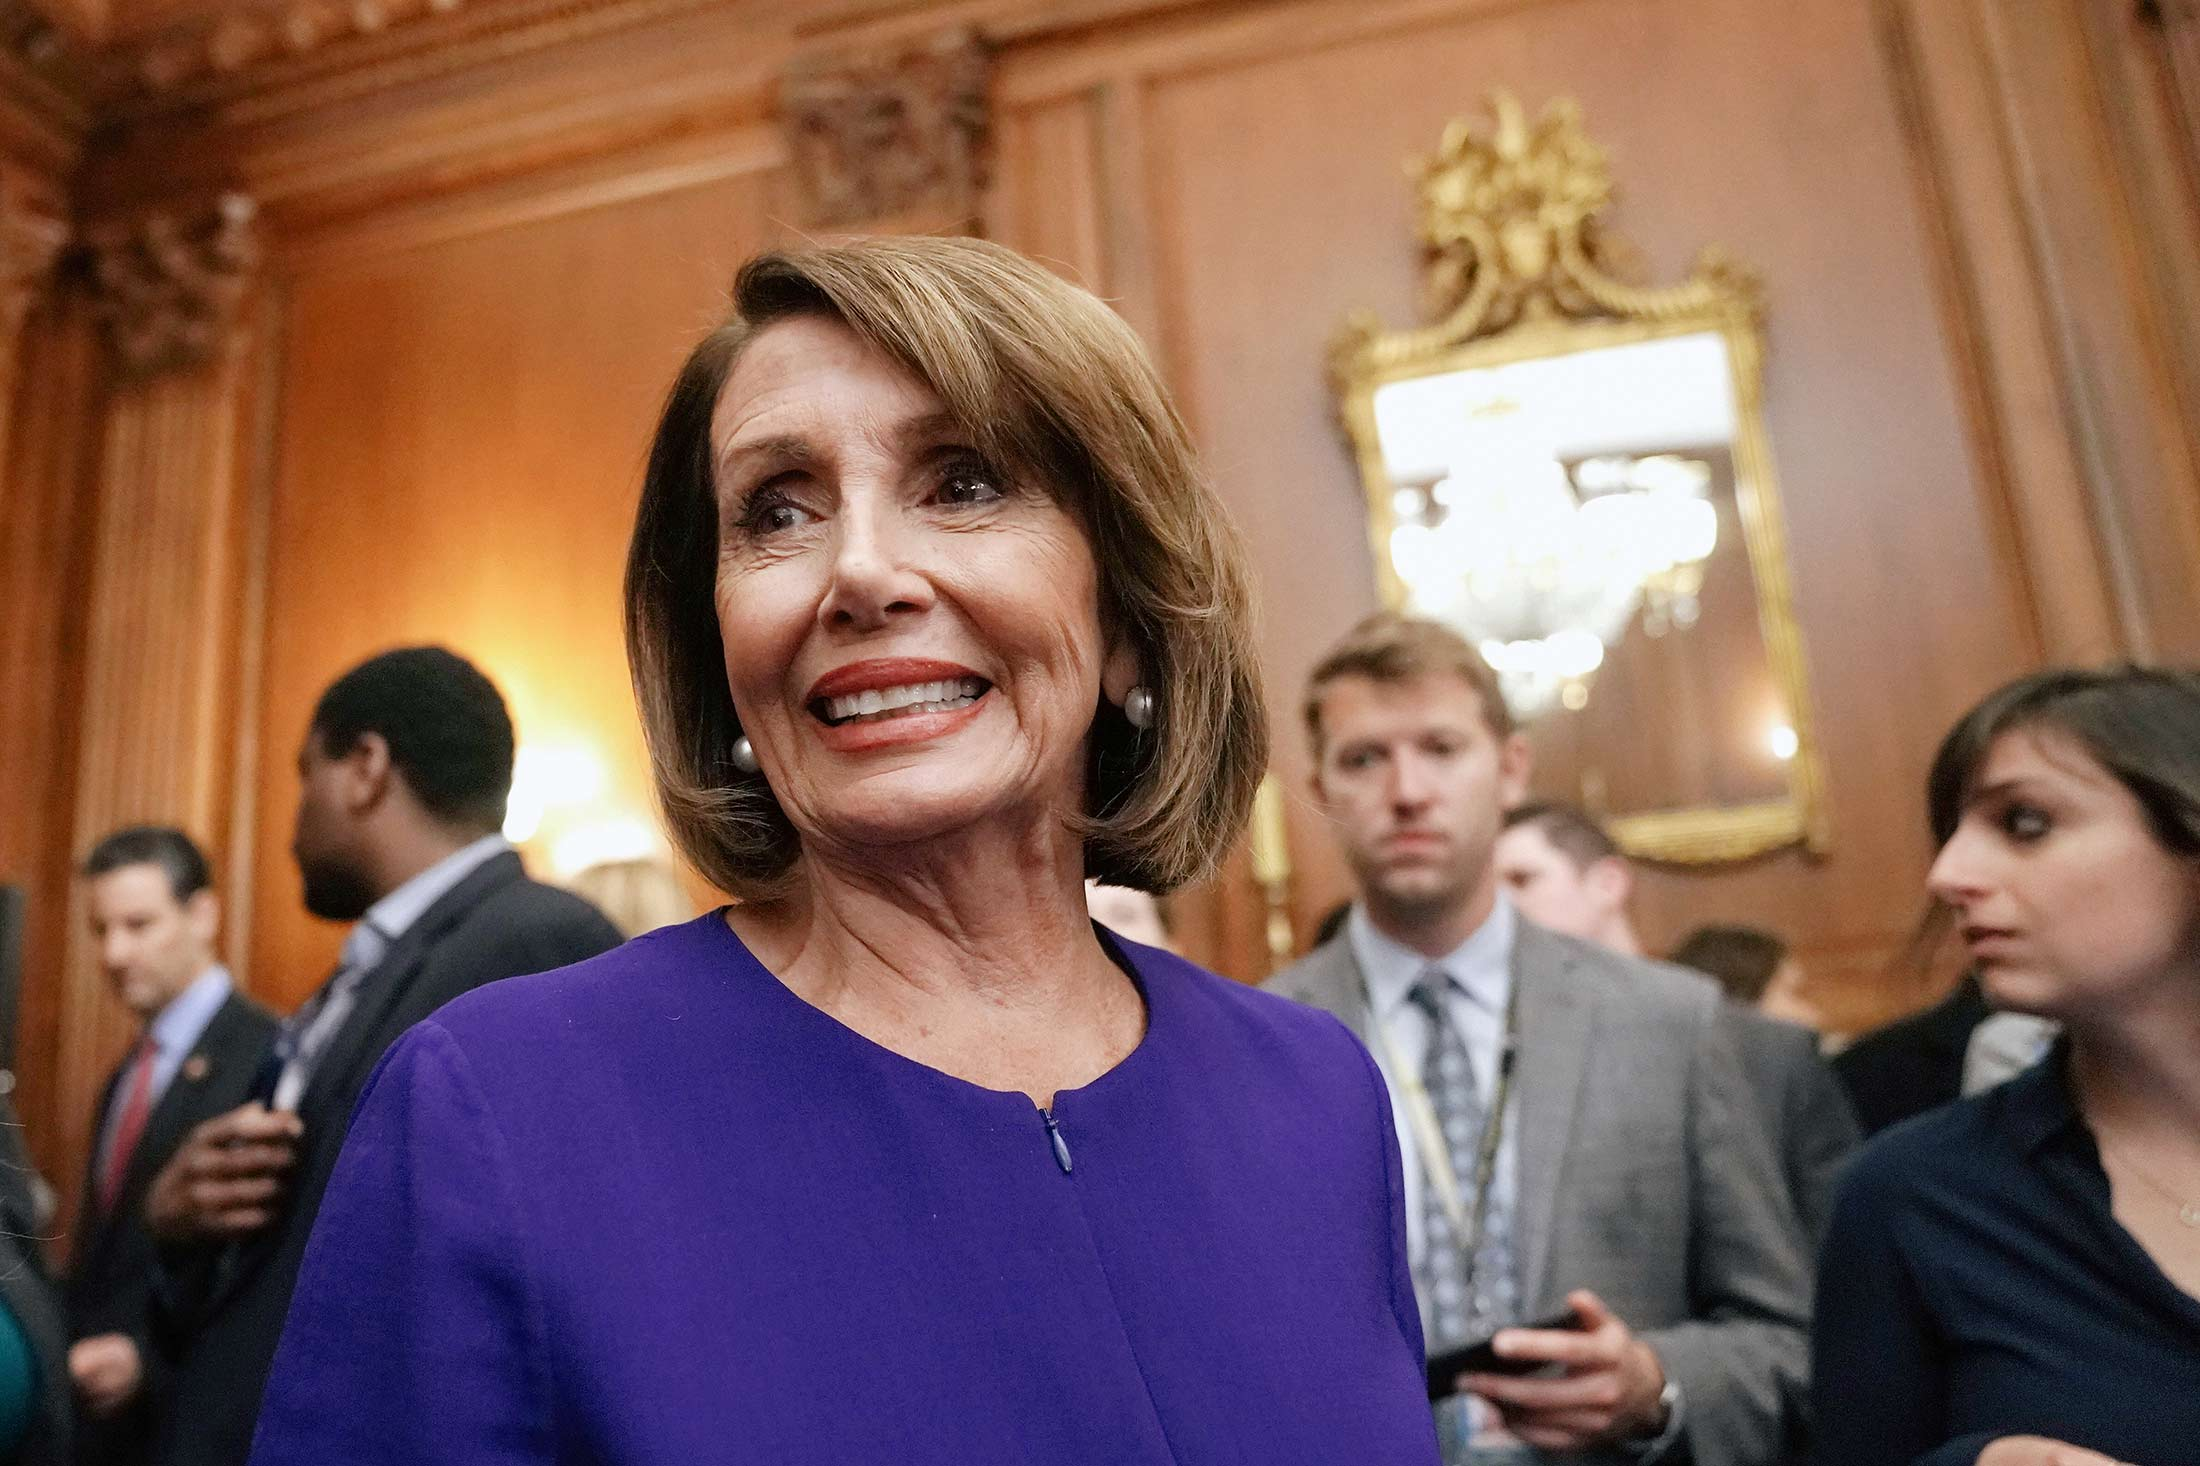 Nancy Pelosi wearing a blue jacket in a wood paneled room of the U.S. Capitol building surrounded by men in suits in the background.